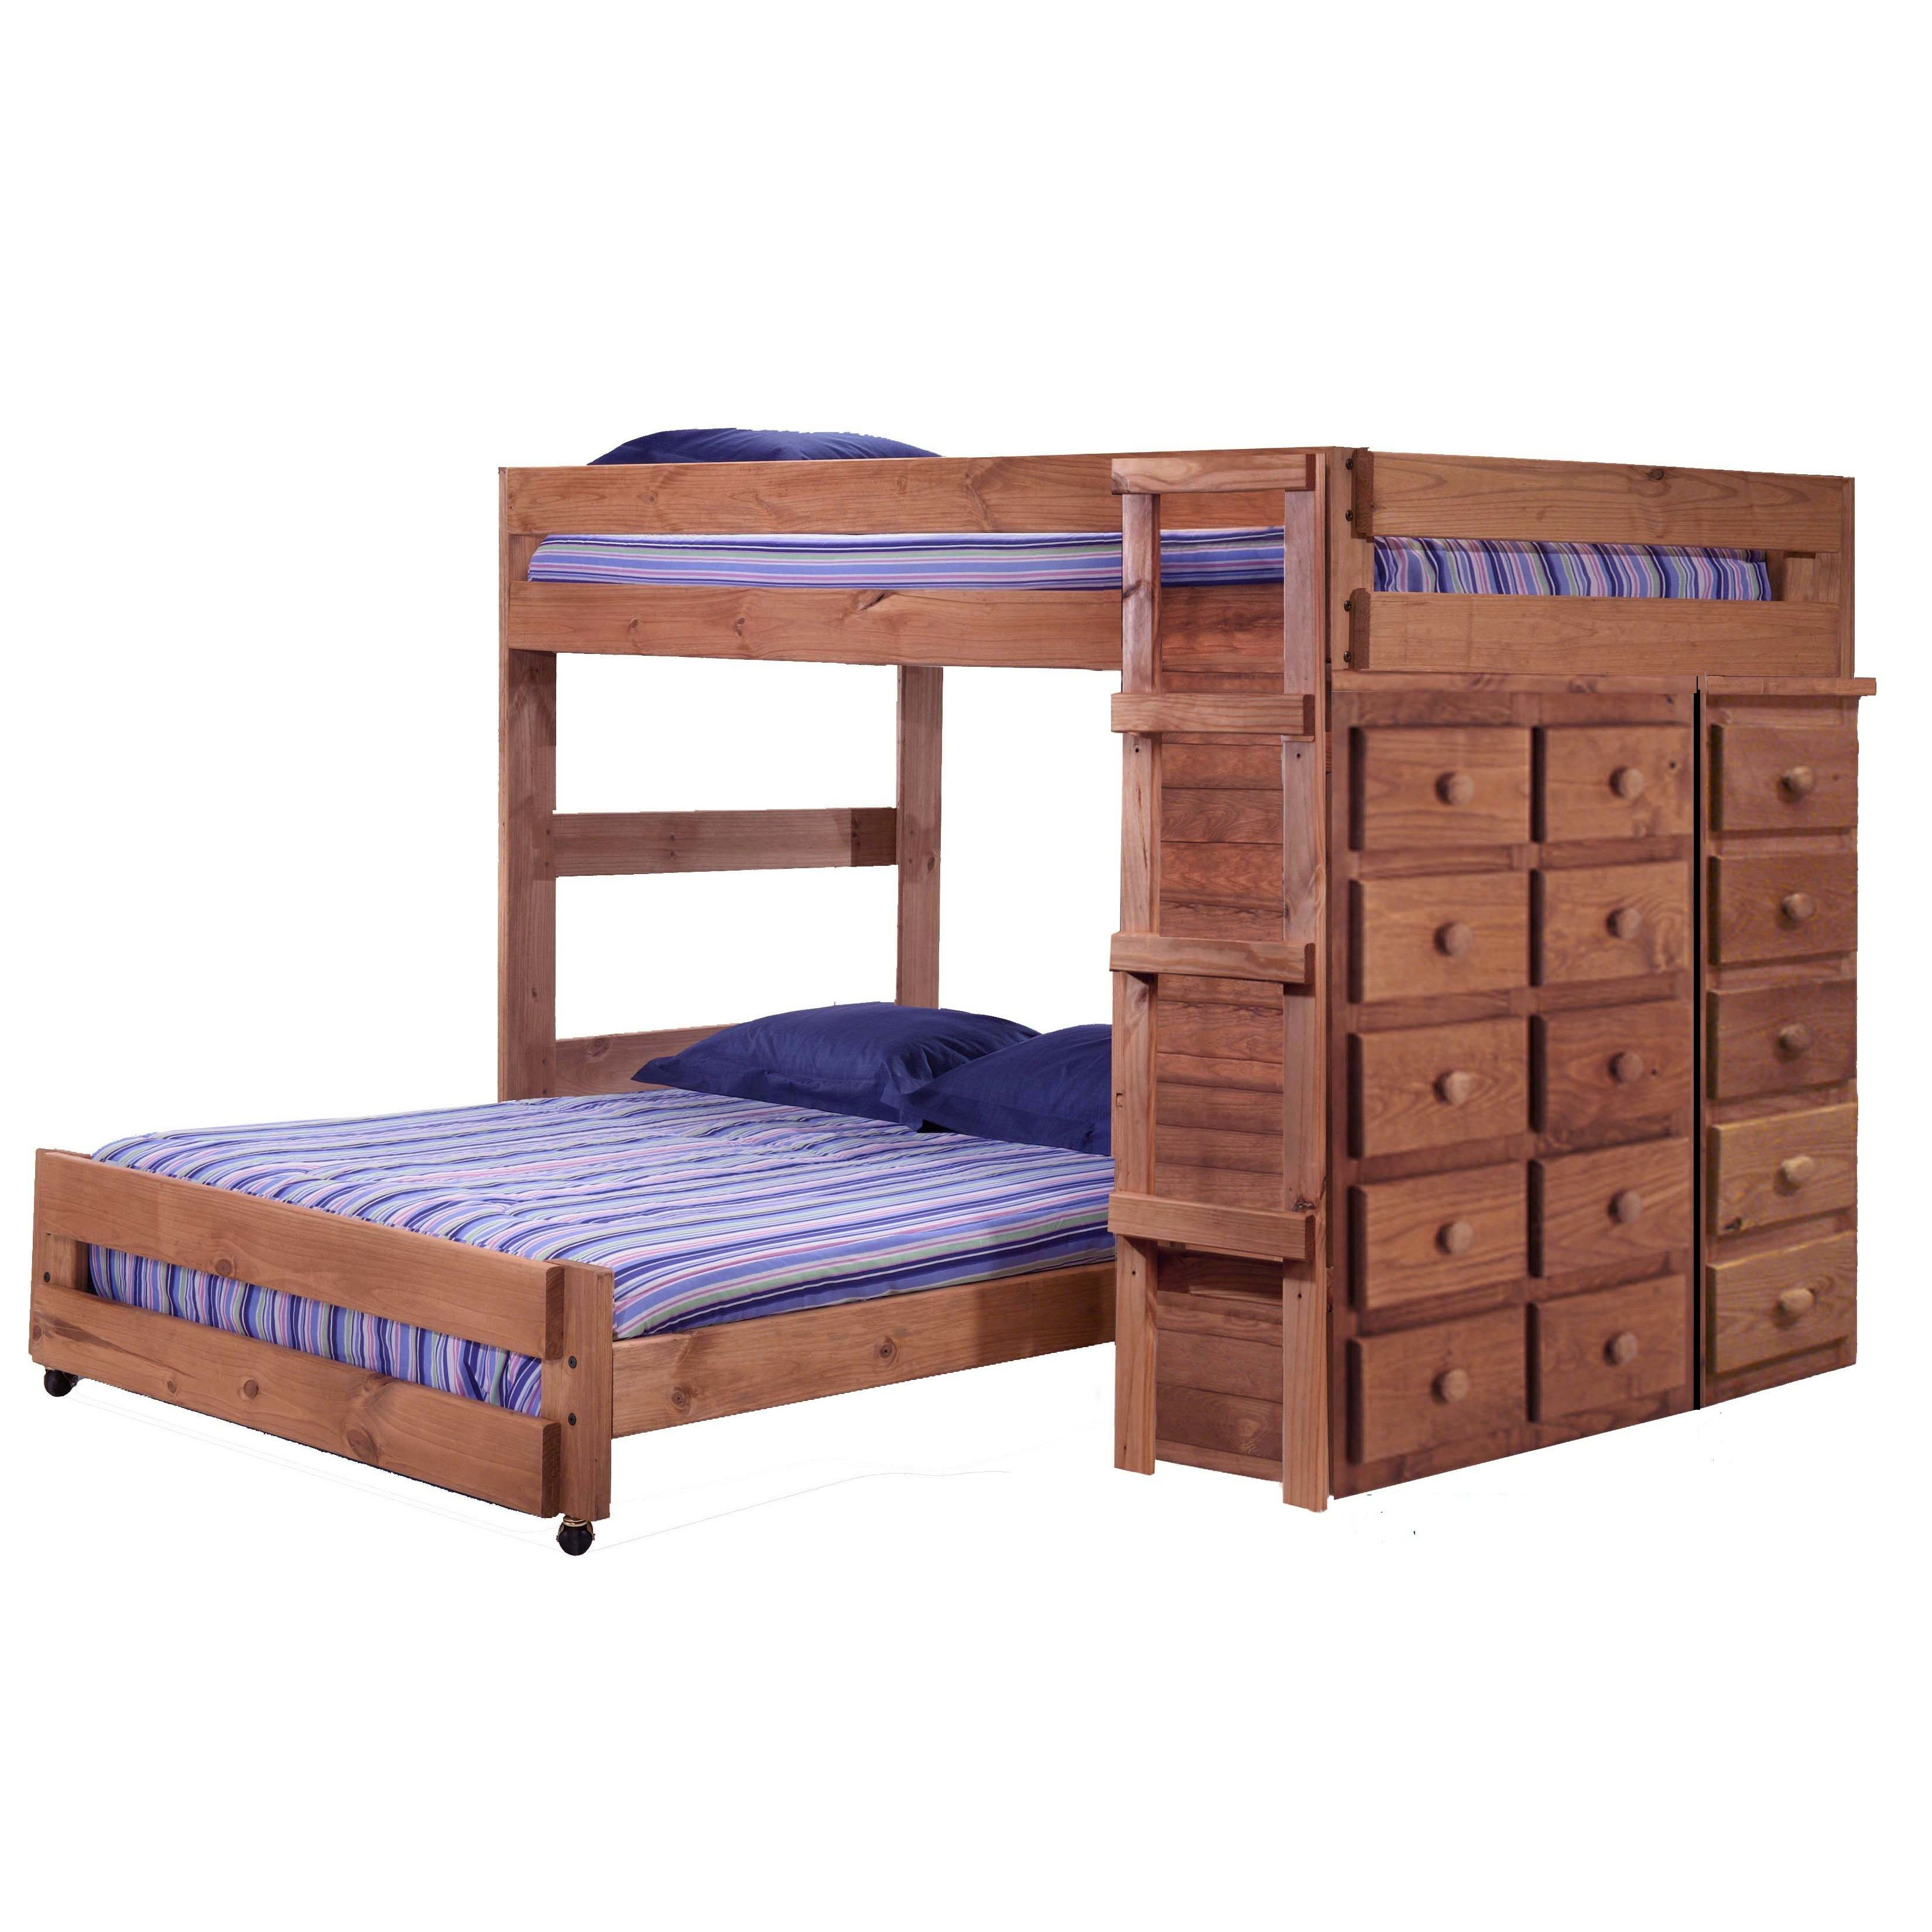 Loft bed storage ideas  Chelsea Home Full over Full LShaped Bunk Bed with Storage  Kids